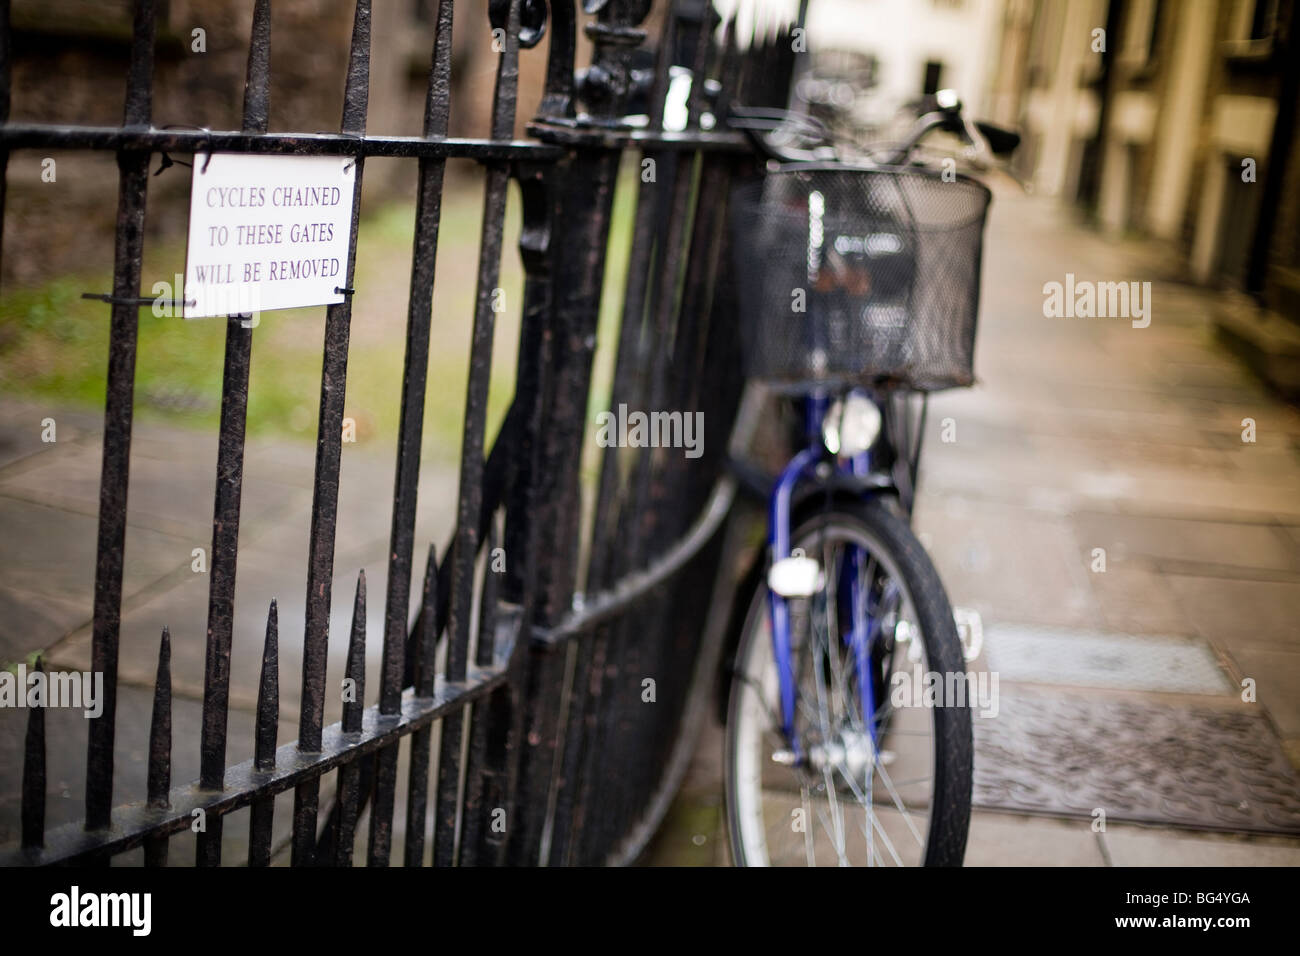 bicycles chained to a fence with warning sign that they will be removed in the university city of Cambridge in England - Stock Image